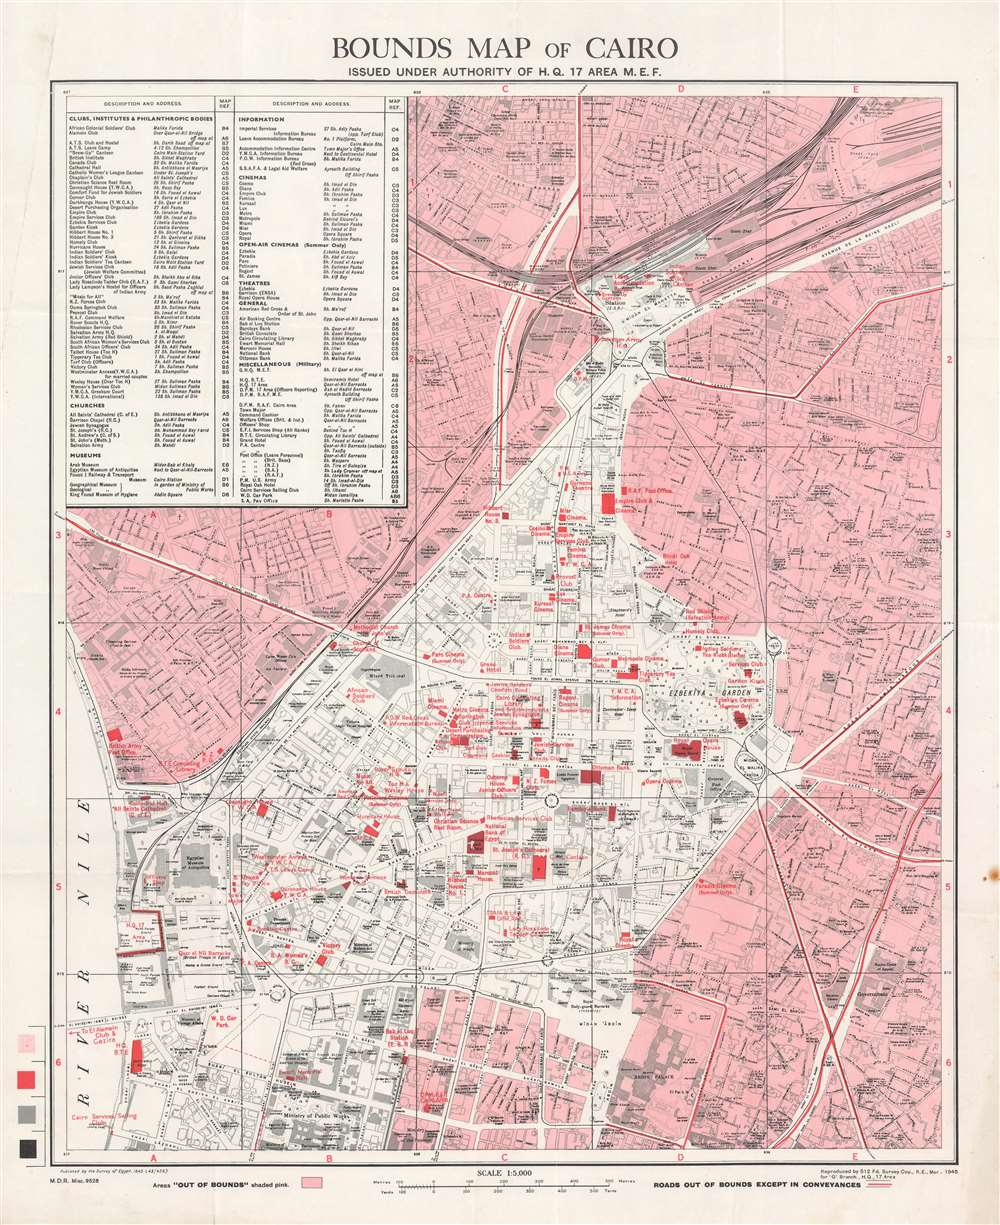 Bounds Map of Cairo Issued Under Authority of H. Q. 17 Area M. E. F. - Main View